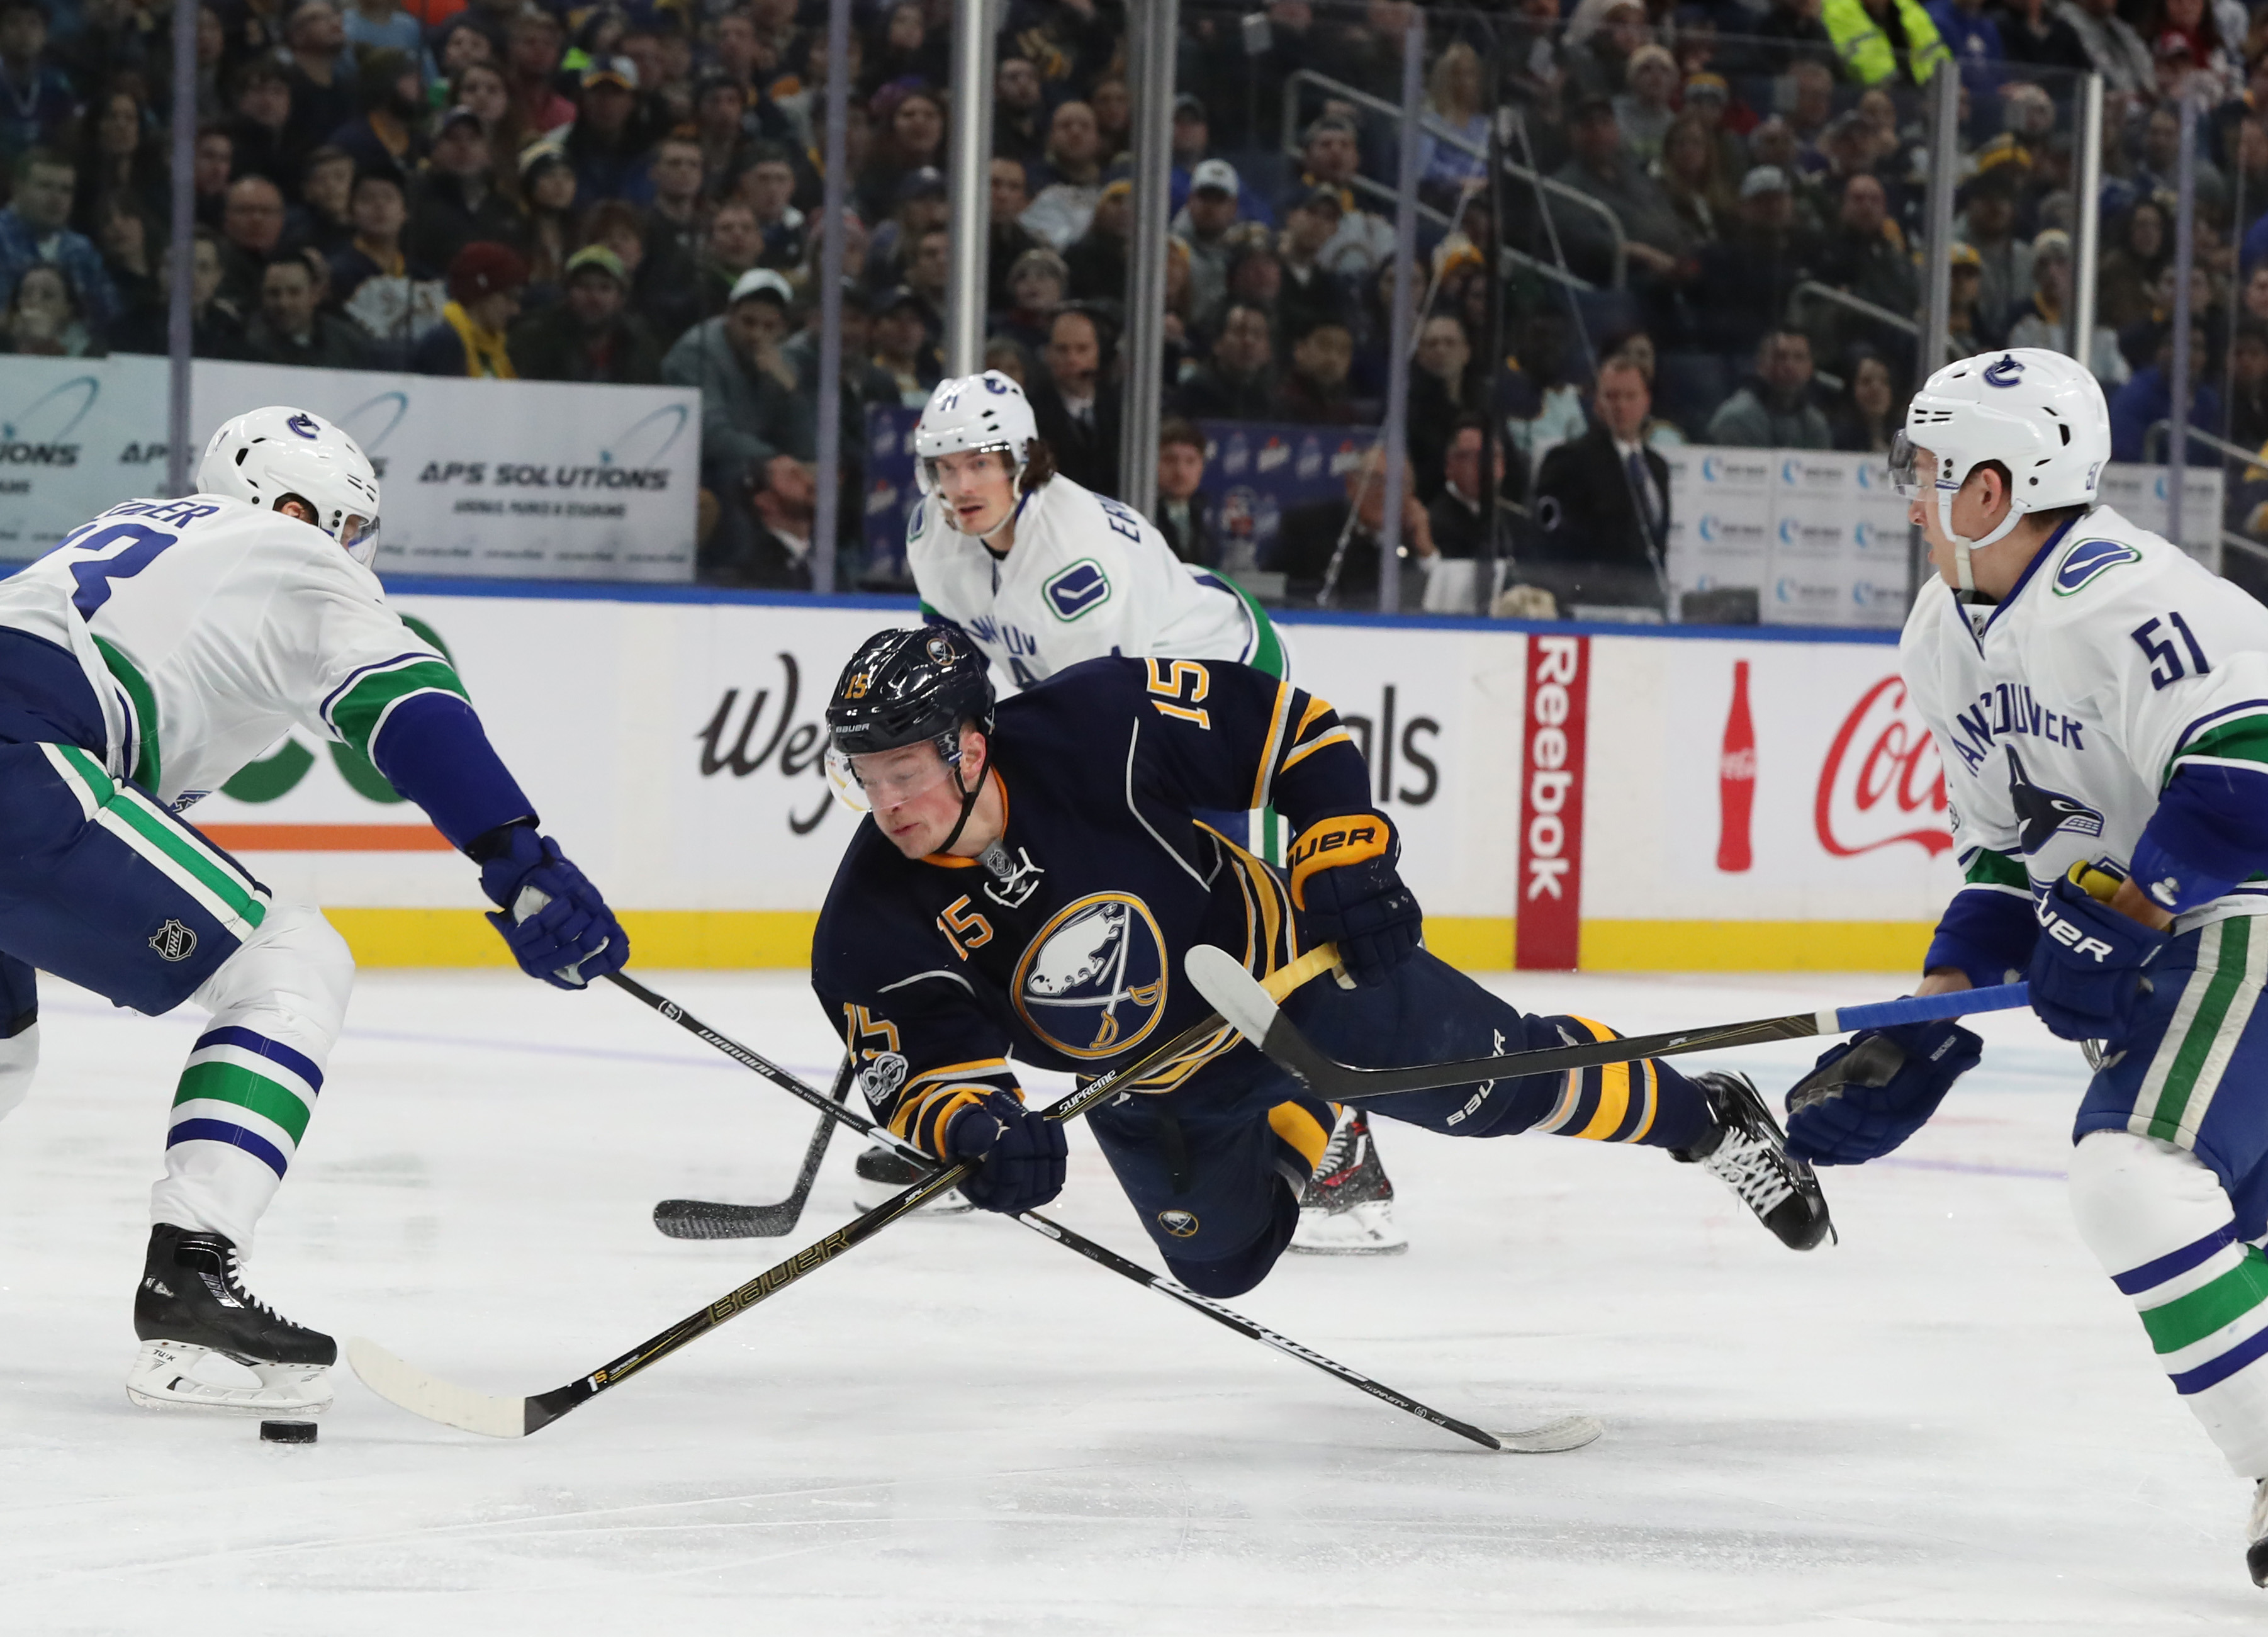 Buffalo Sabres center Jack Eichel (15) is tripped by Vancouver Canucks defenseman Alexander Edler (23) in the first period at Key Bank Center Buffalo N.Y. on Sunday, Feb. 12, 2017.  (James P. McCoy/Buffalo News)